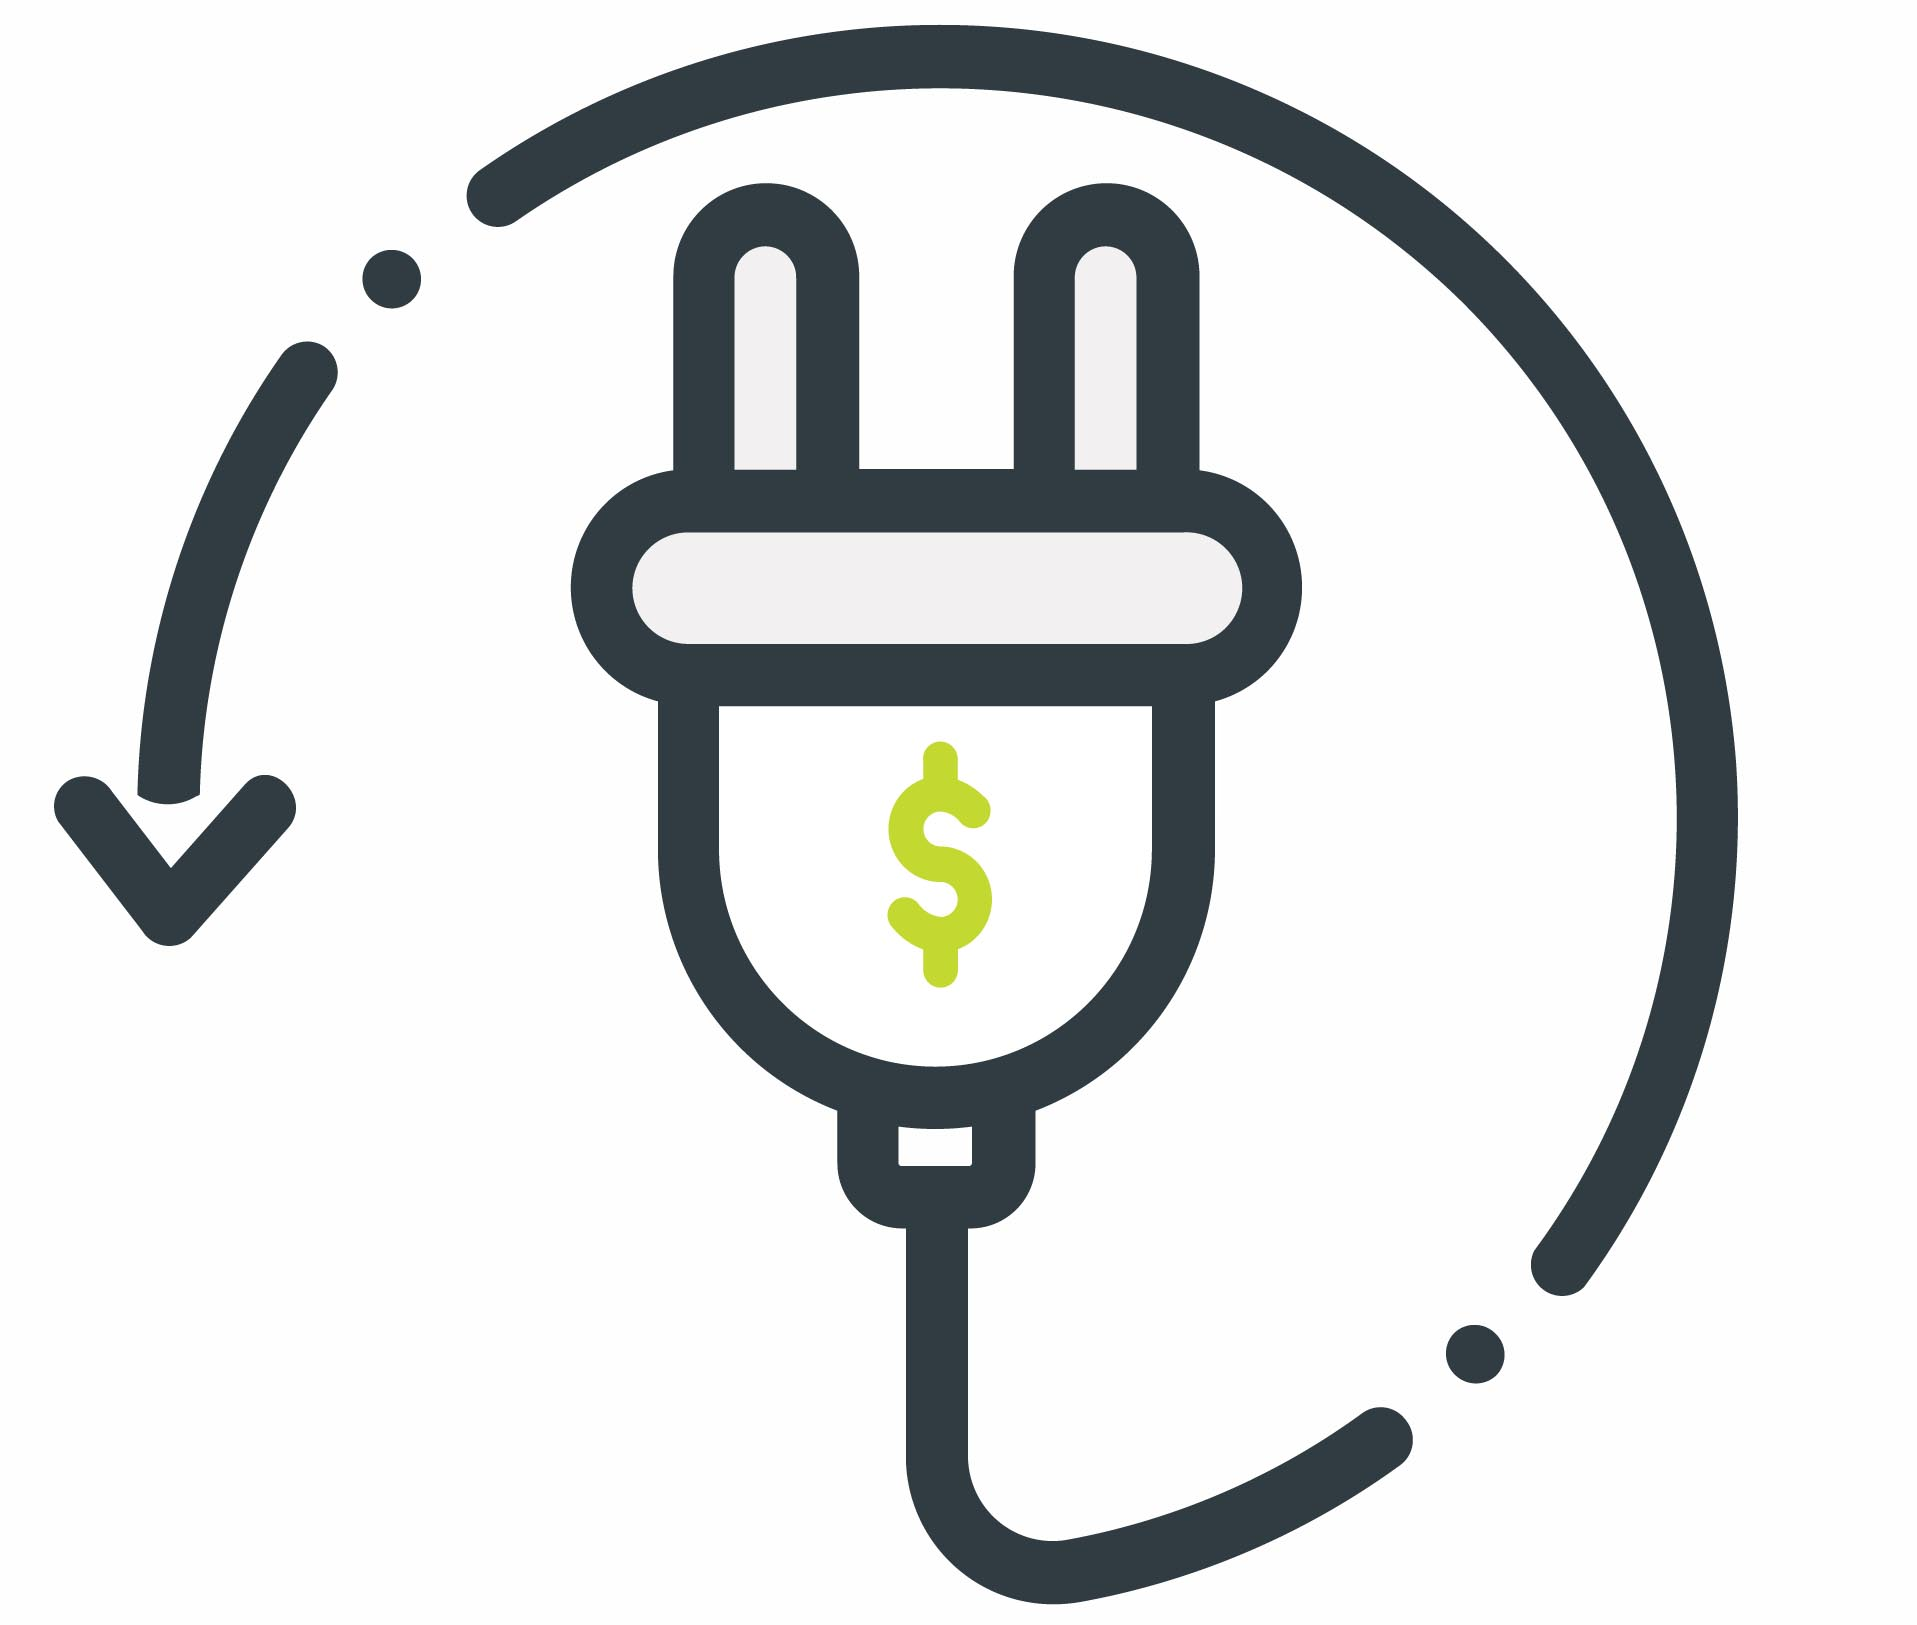 Illustration of electrical plug with dollar sign